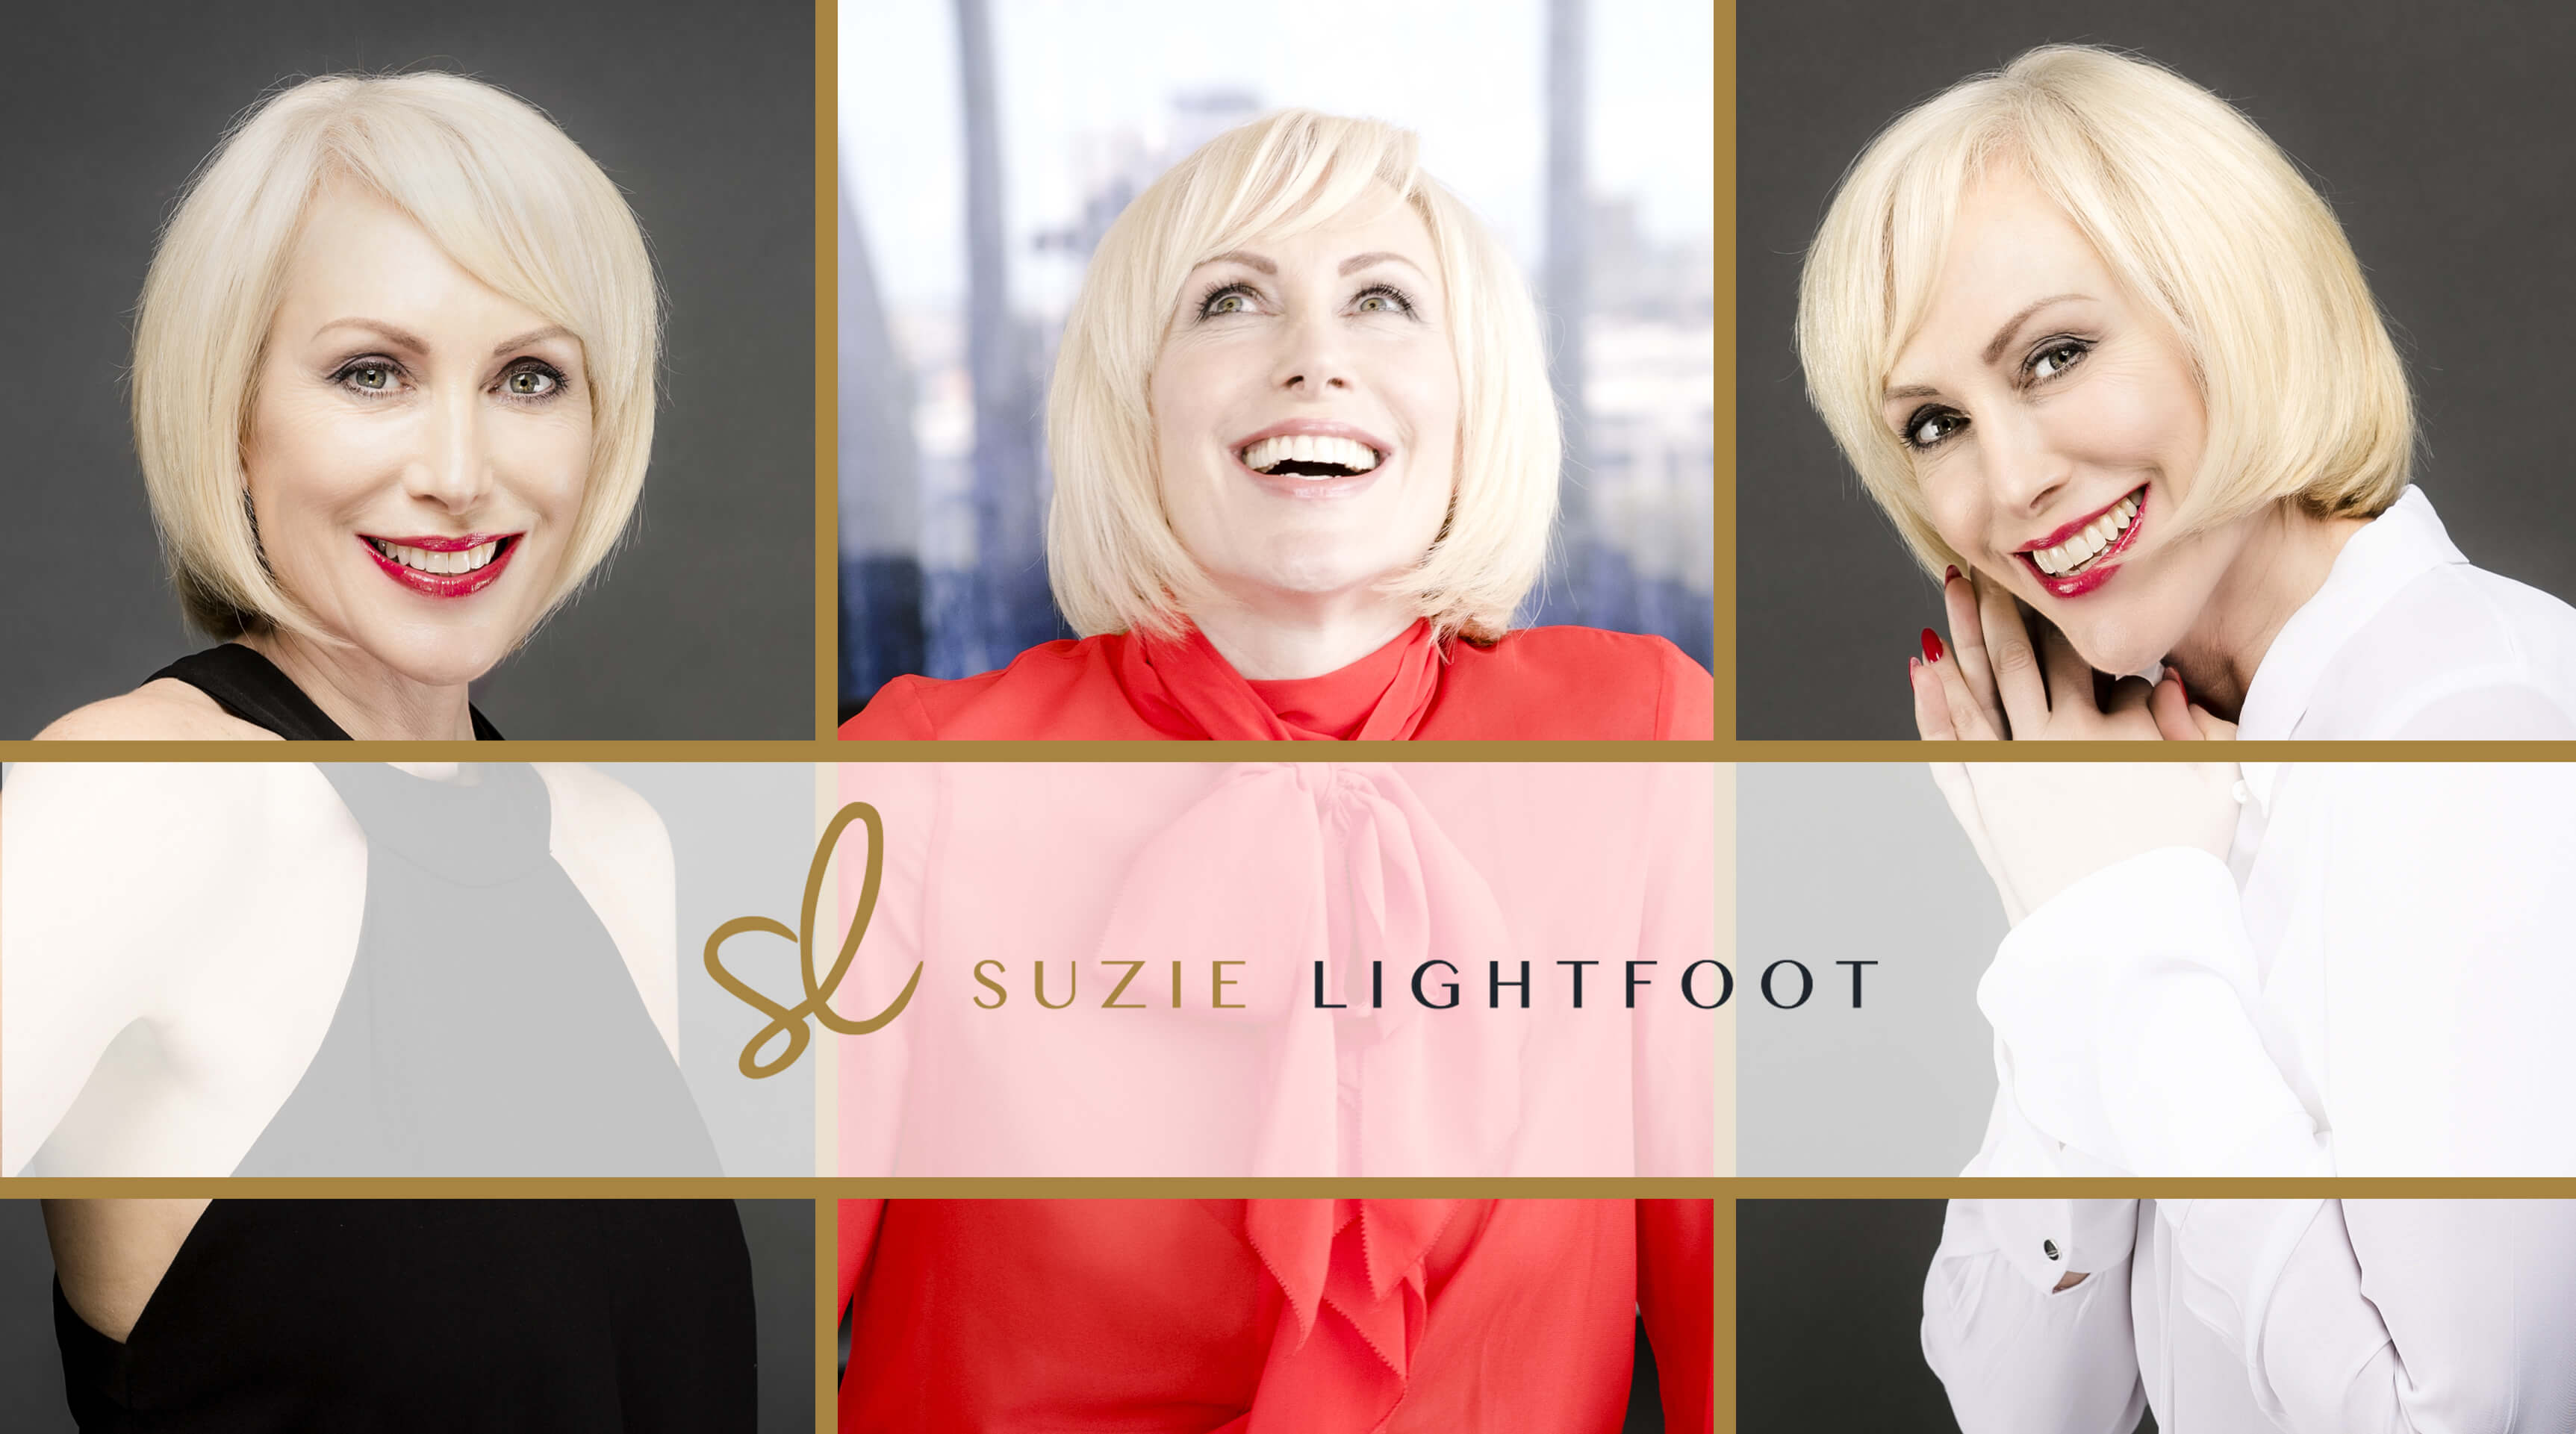 Hi I'm Suzie Lightfoot!